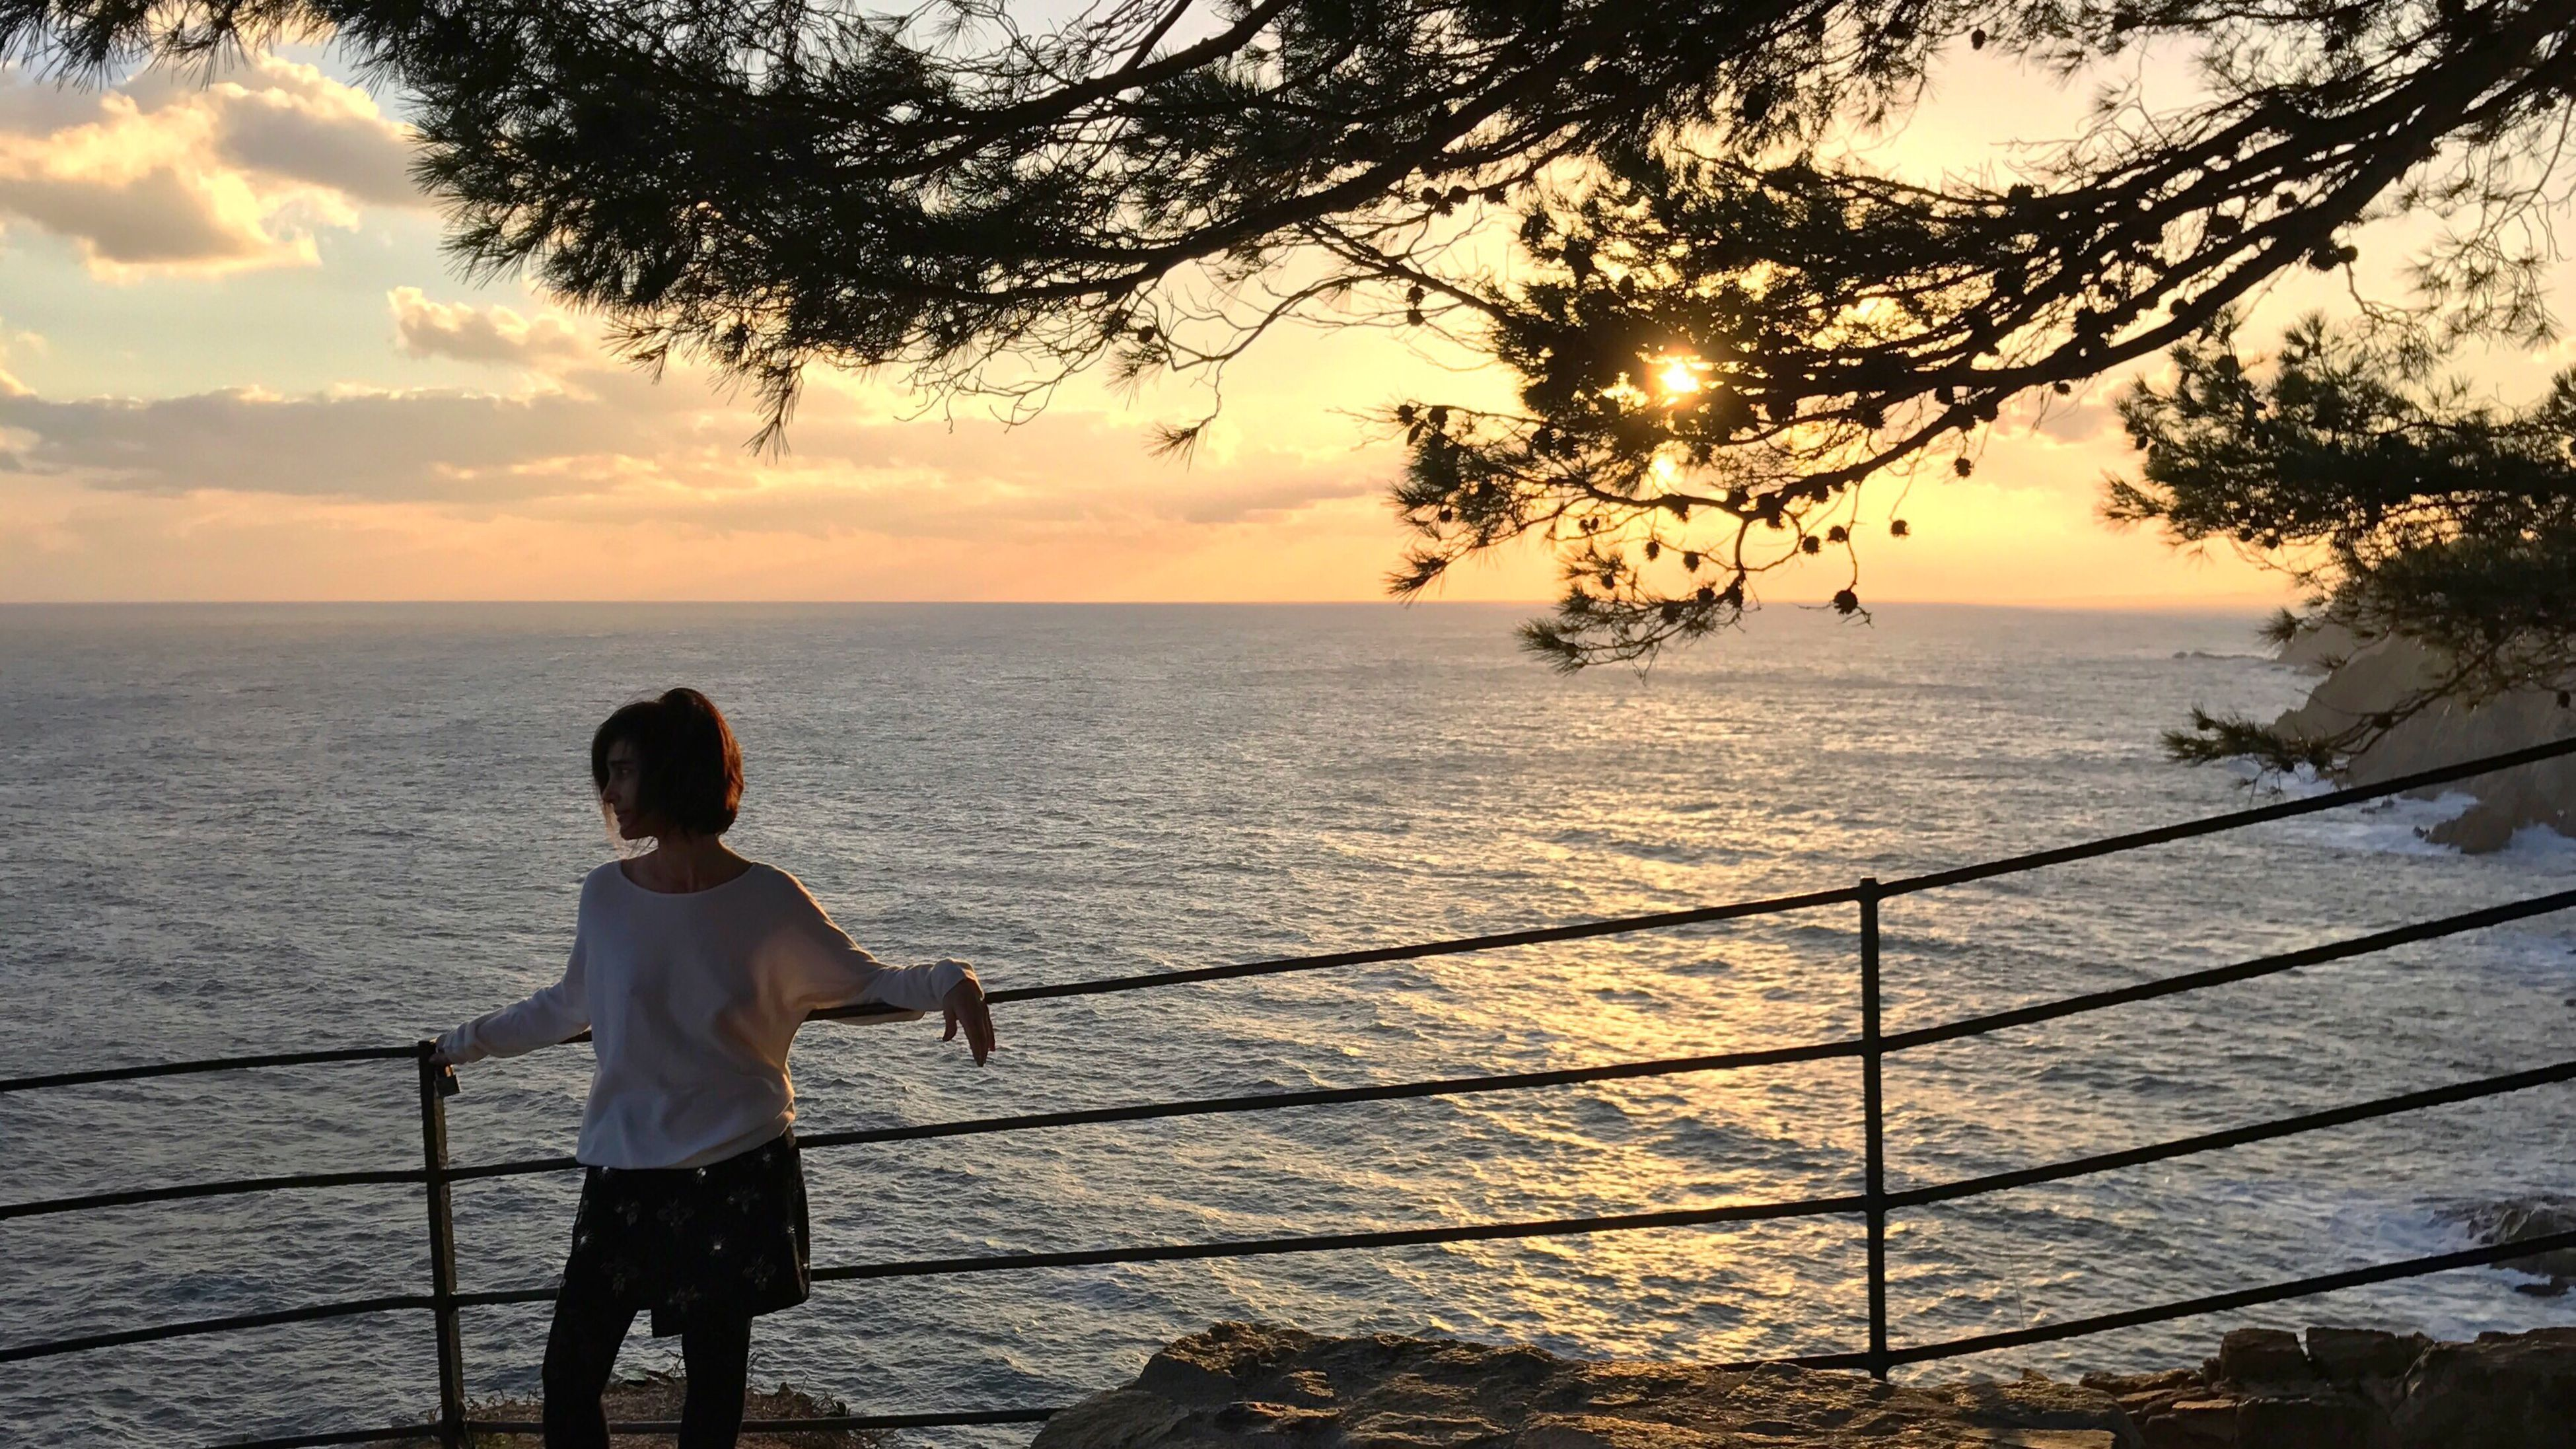 sunset, water, one person, rear view, child, sea, childhood, children only, nature, people, outdoors, vacations, tree, beauty in nature, sky, day, adult